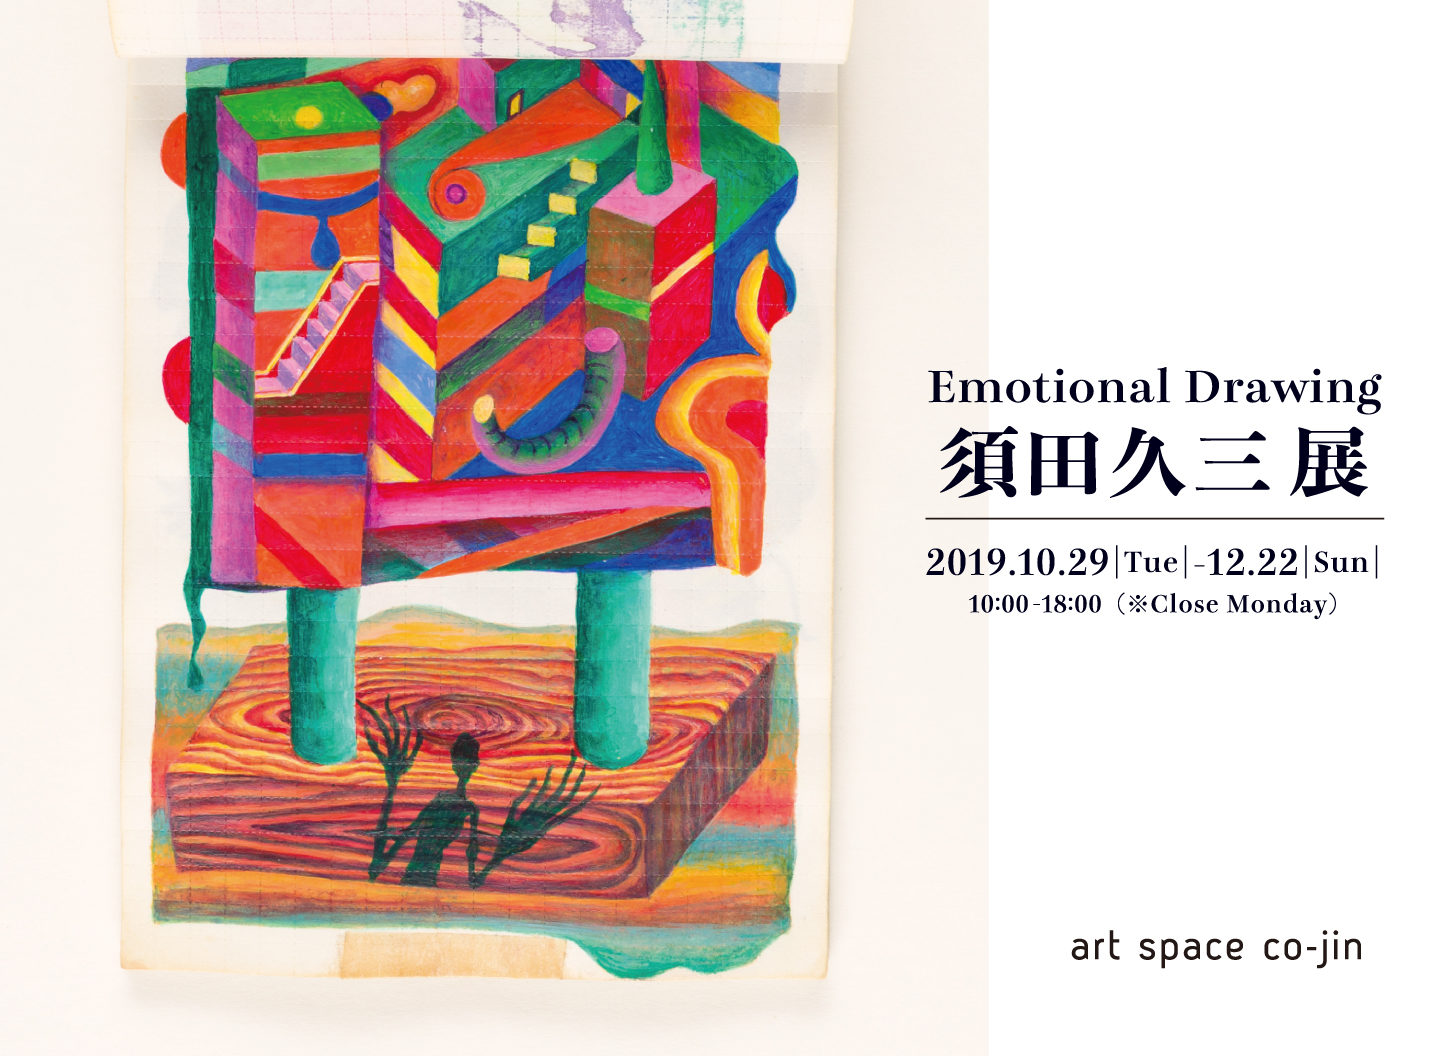 Emotional Drawing|須田久三 展